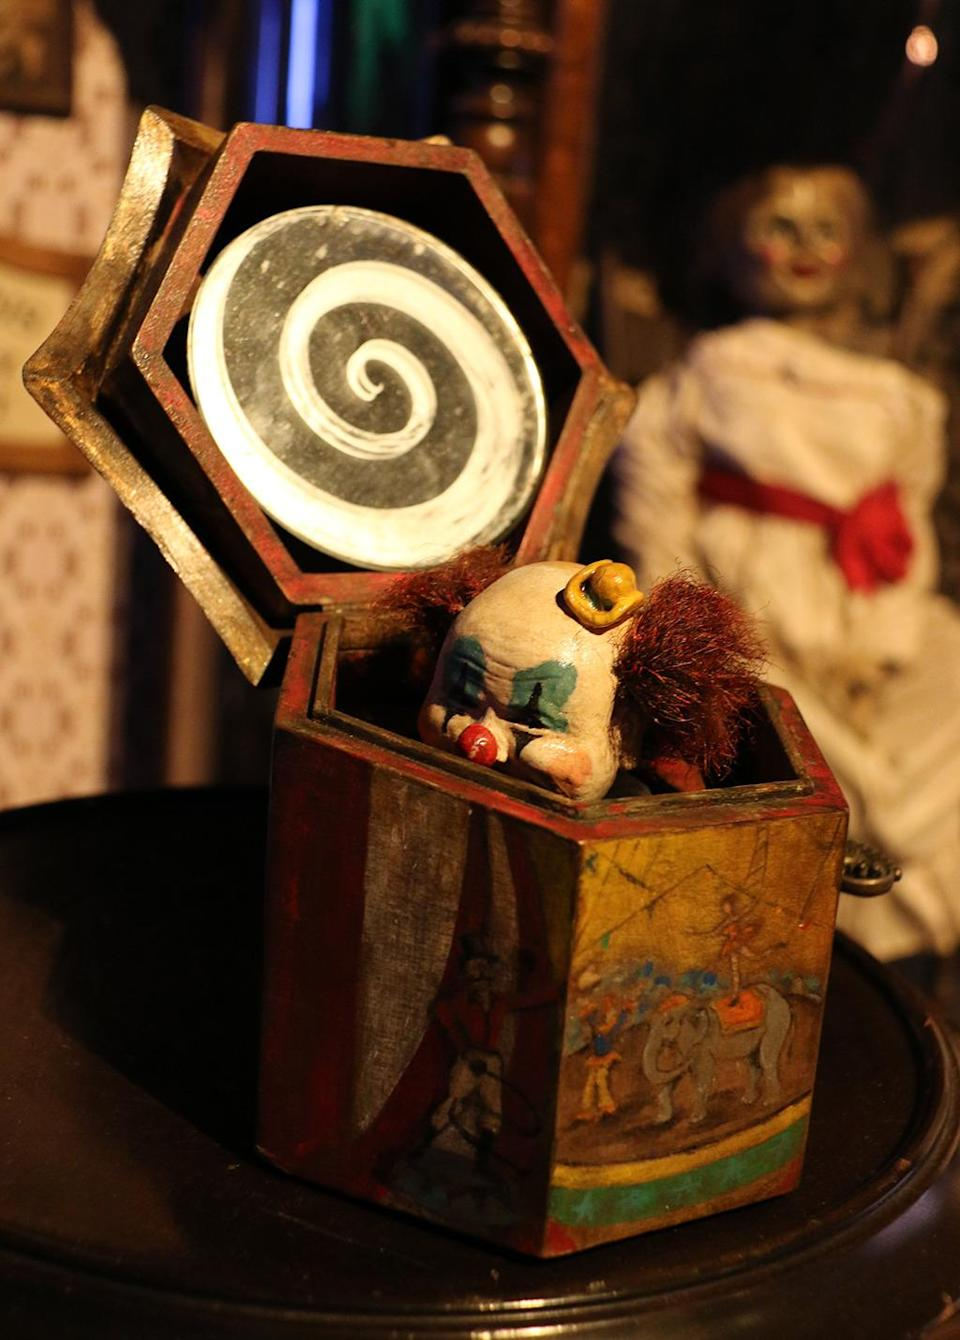 <p>A close-up of the creepy clown getting ready to pop out. (Photo: Angela Kim/Yahoo) </p>